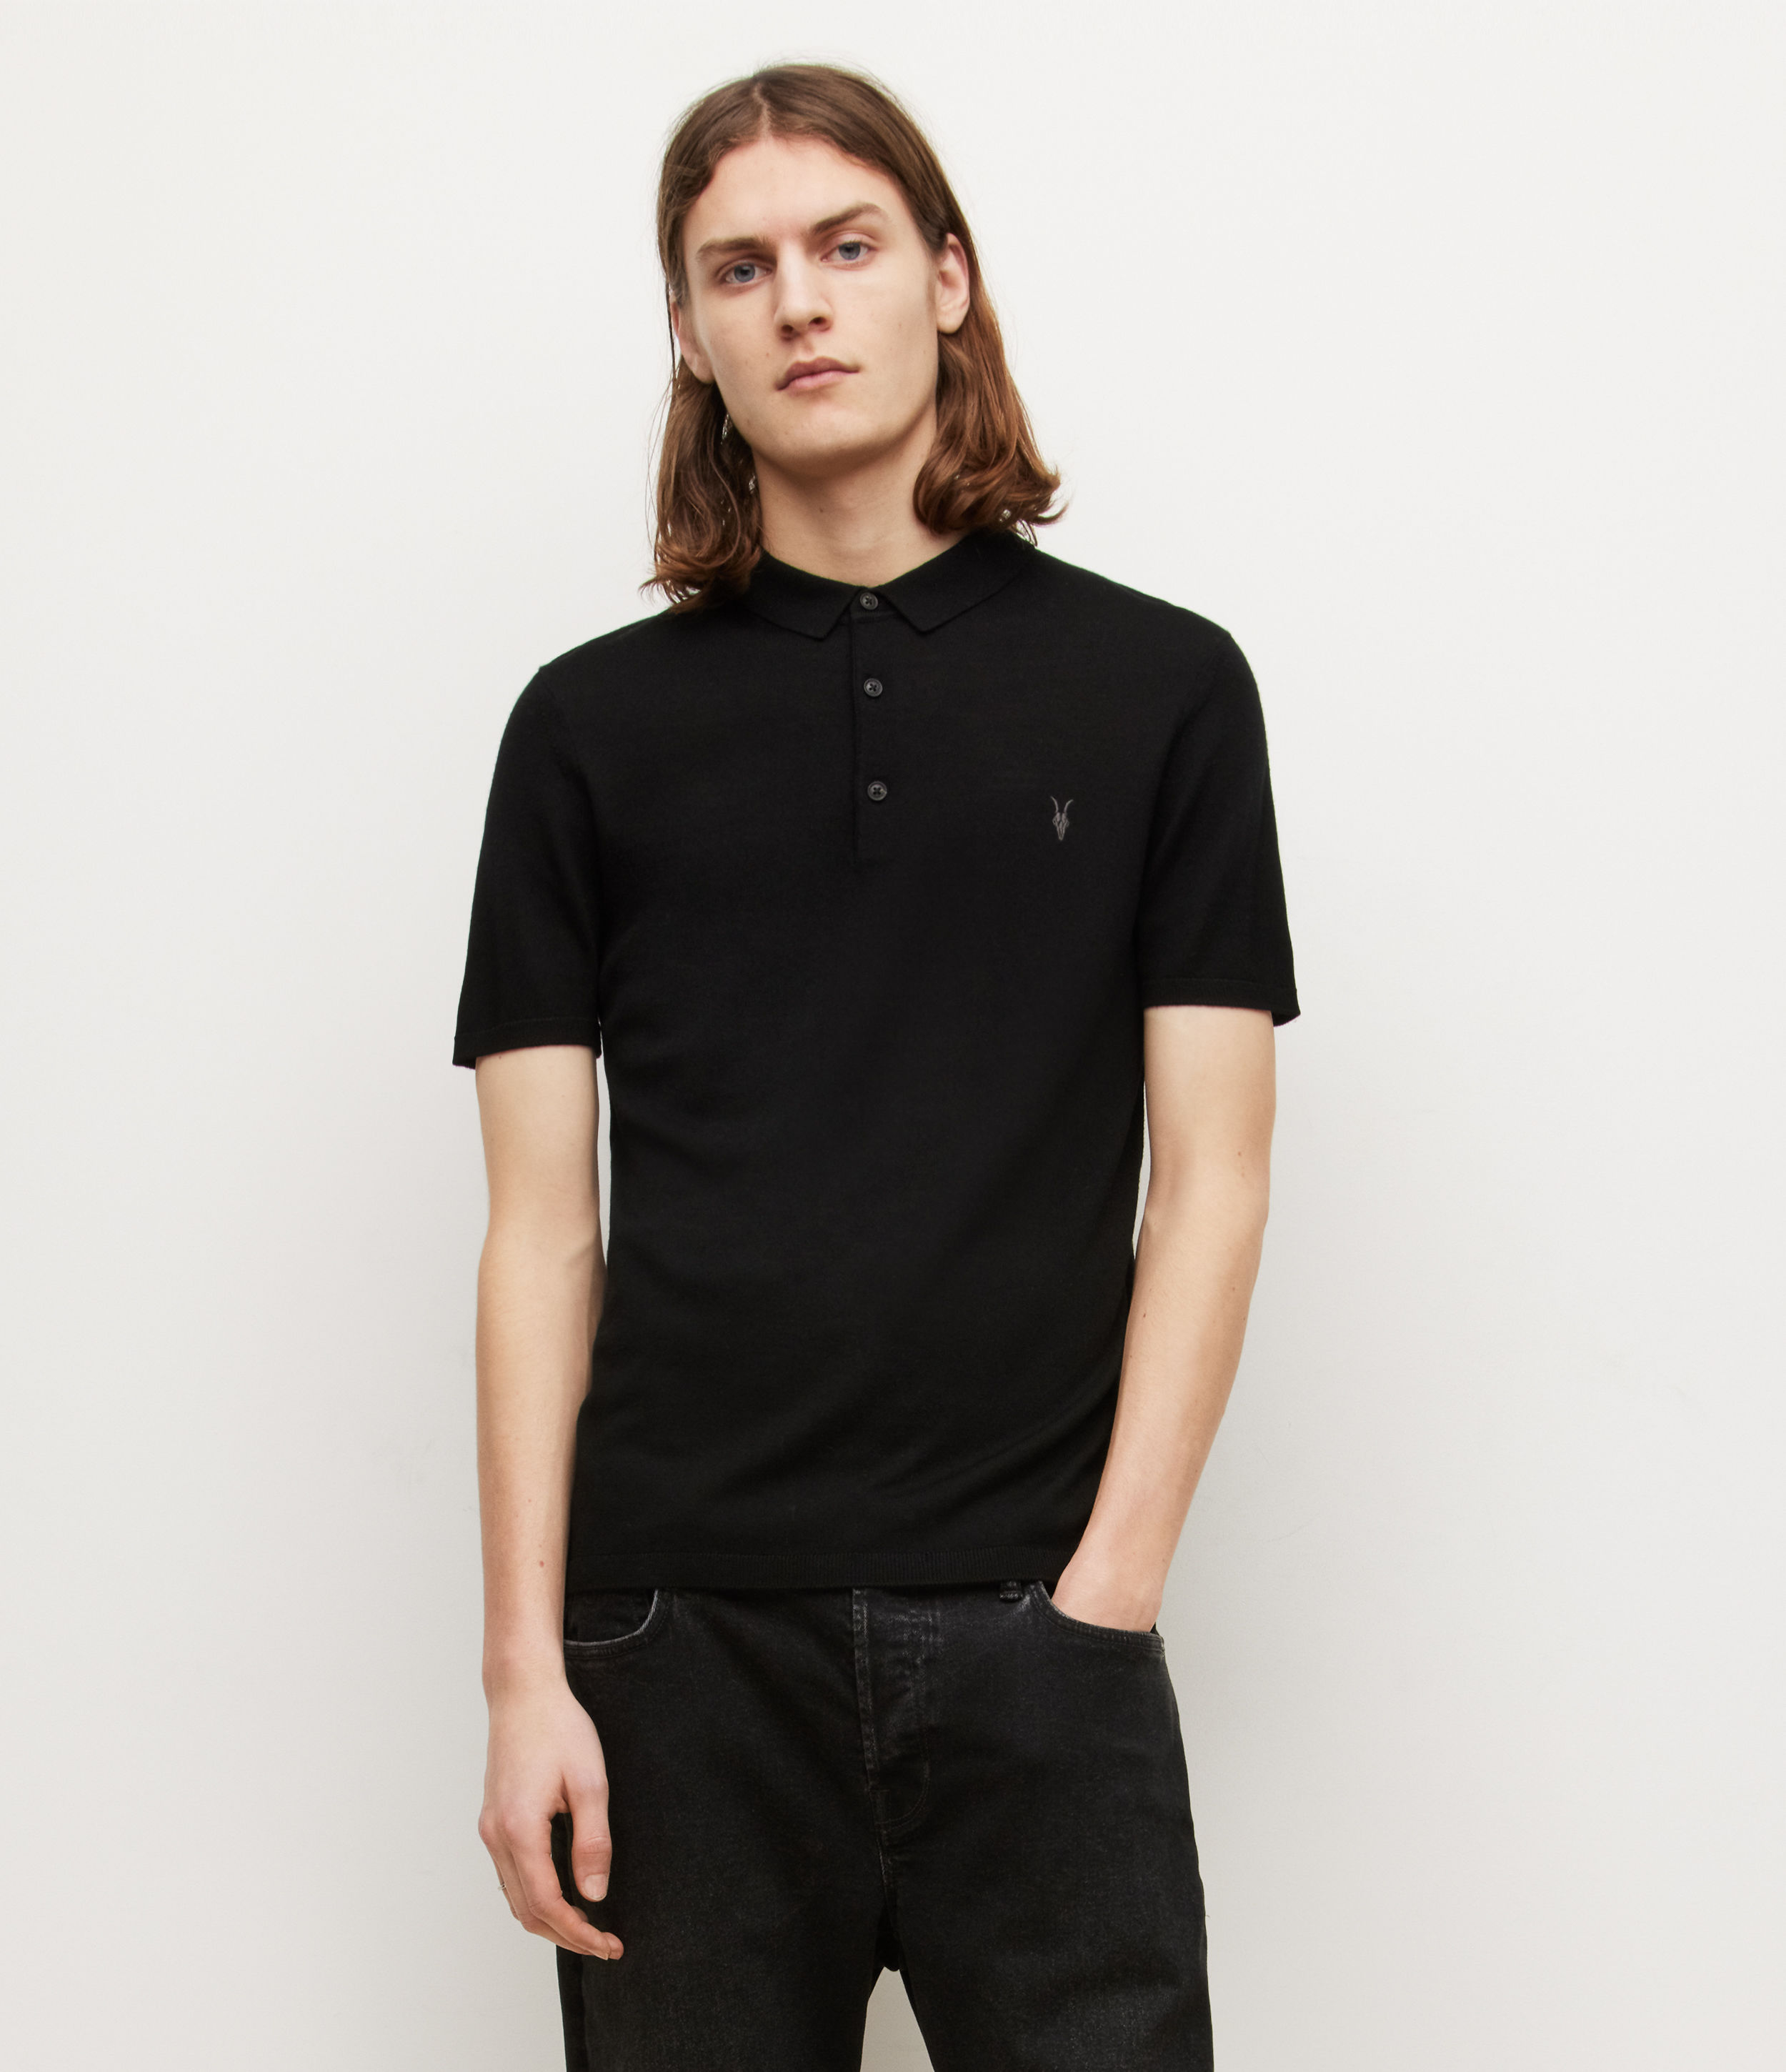 AllSaints Men's Merino Wool Slim Fit Mode Short Sleeve Polo Shirt, Black, Size: XS